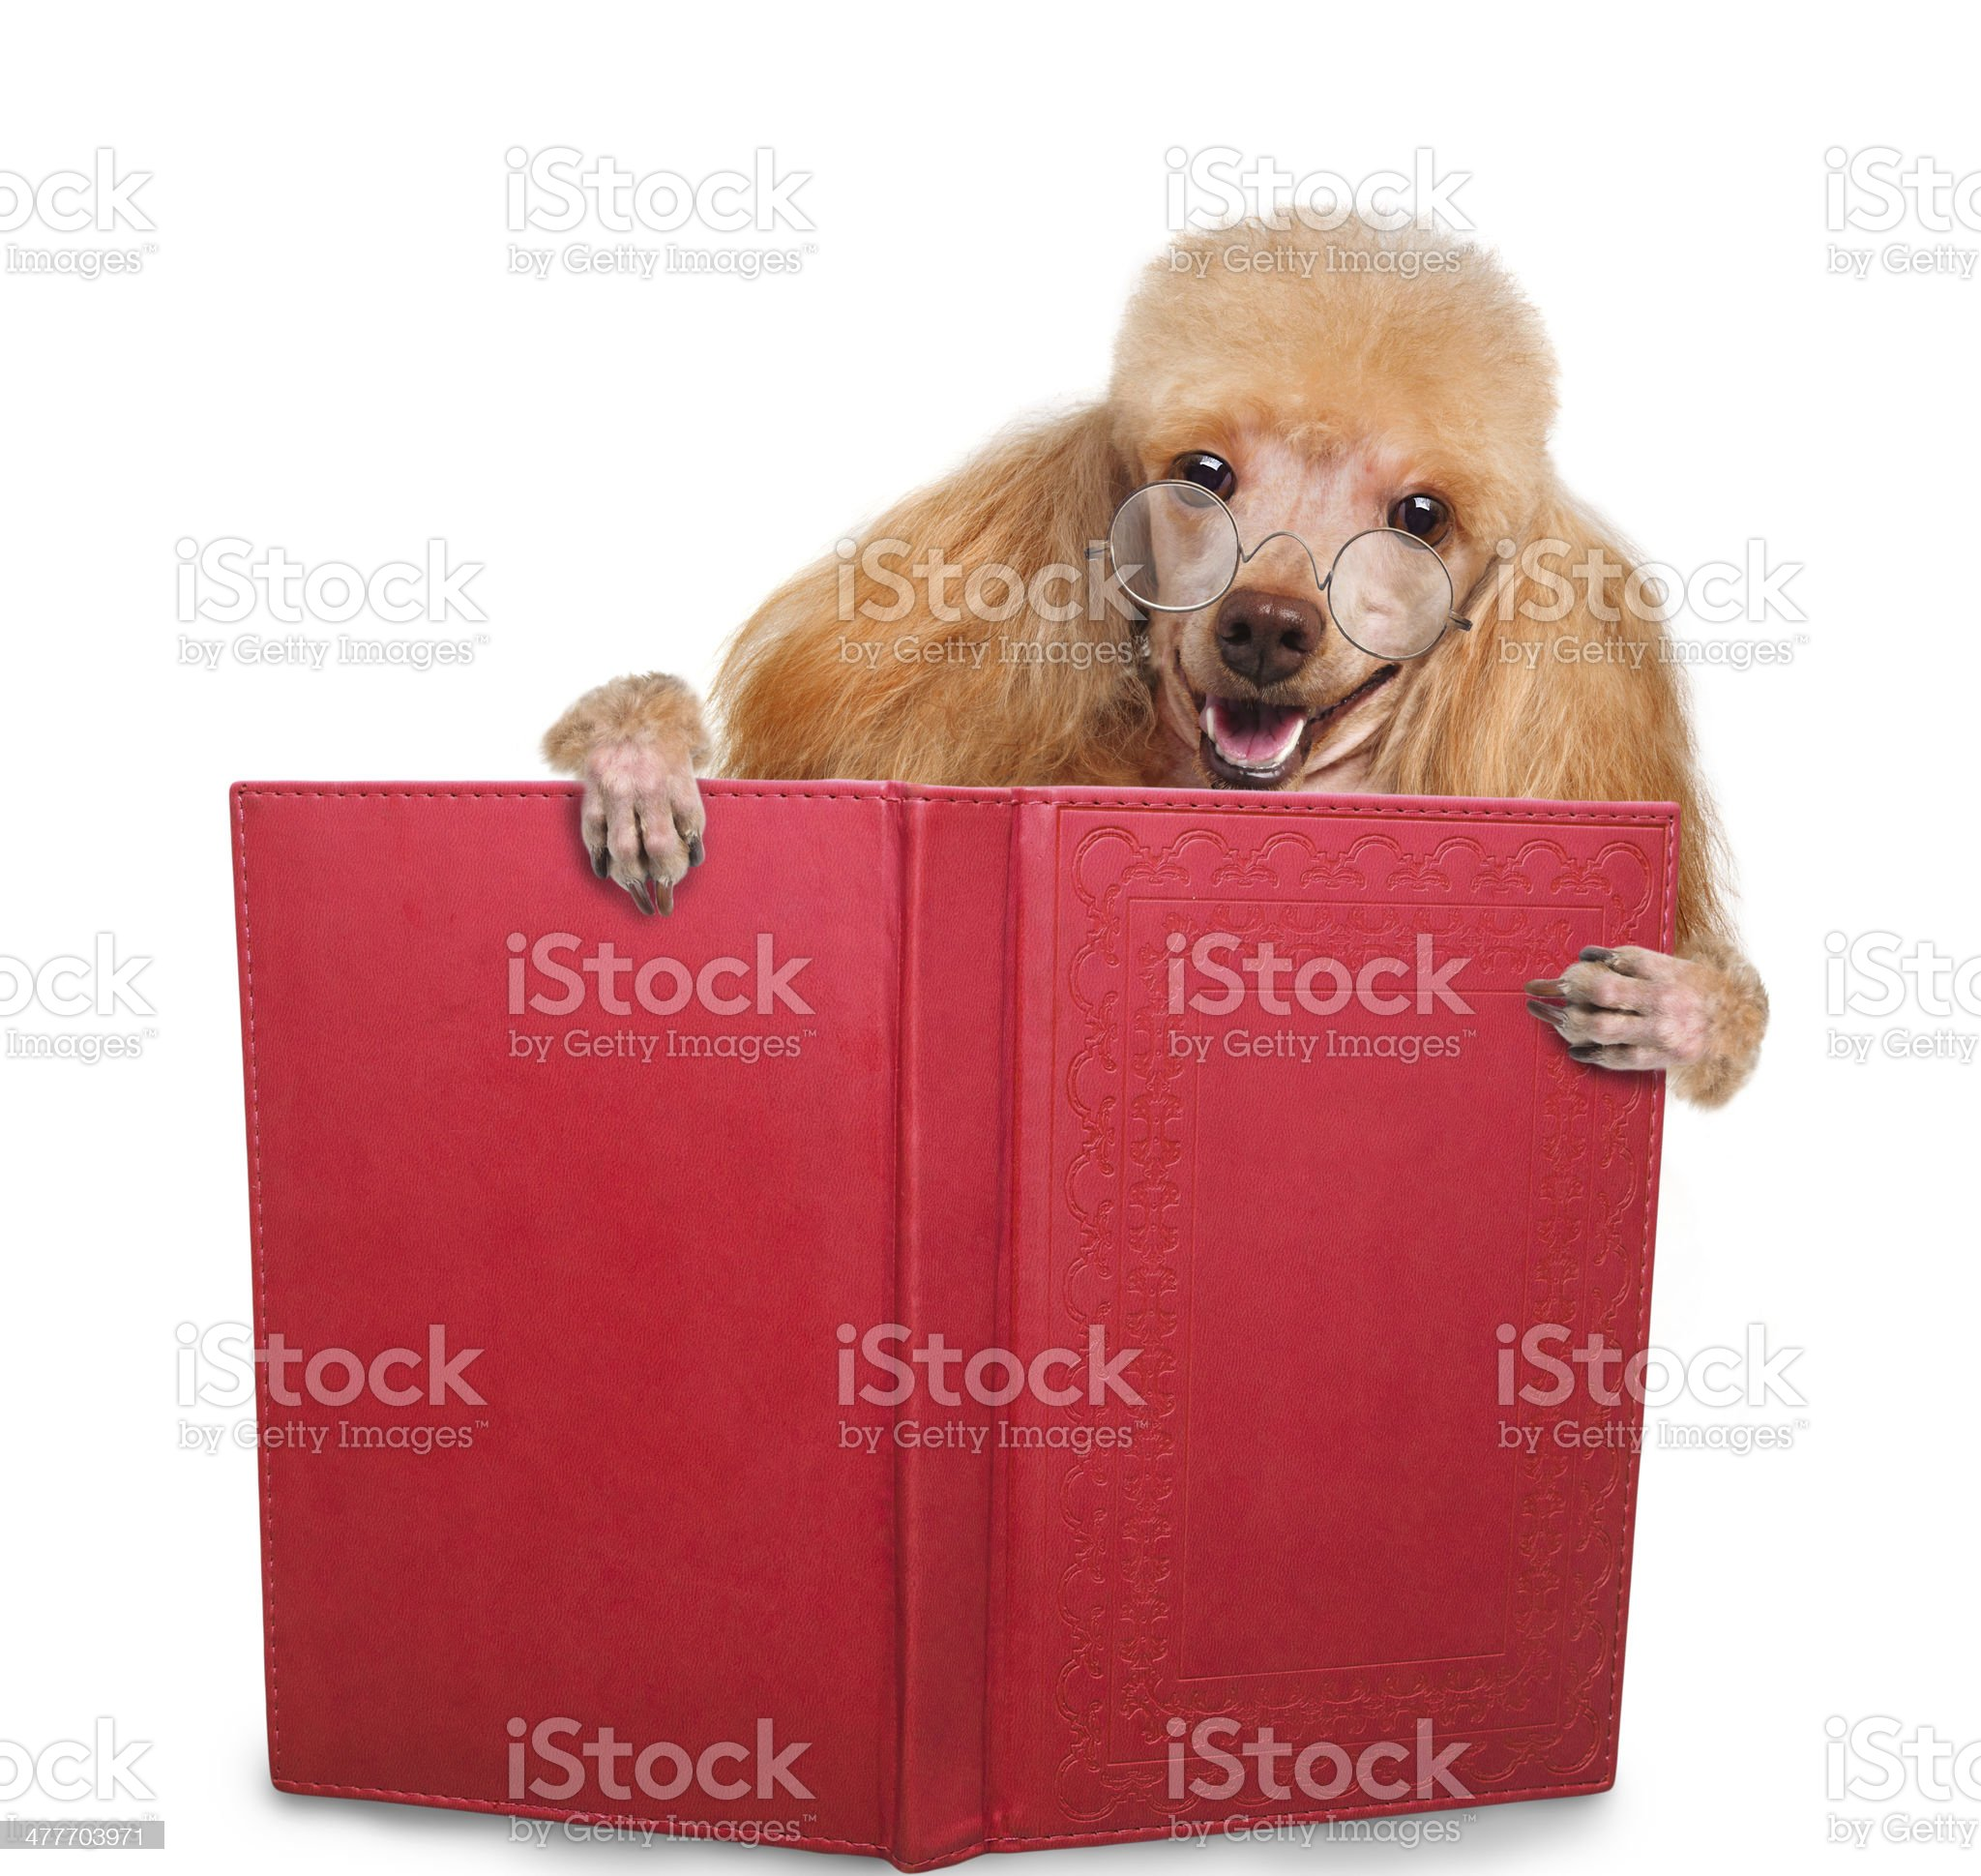 dog reading a book royalty-free stock photo